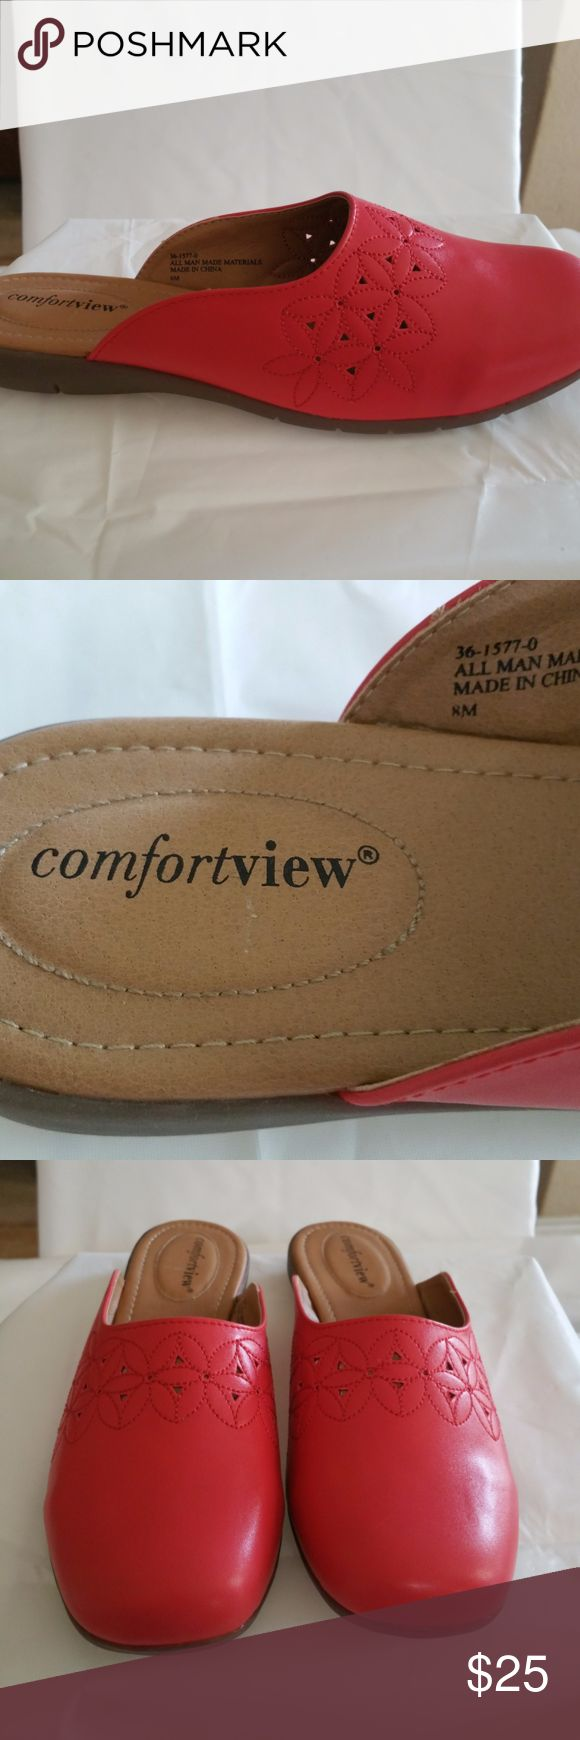 "Comfortview Bella Mule 8 M Dusty Coral Comfortview Mules Casual/Work, versatile 8 M This pair of mules are called Dusty Coral, but they are more of a watermelon color to me, just my opinion!  Pretty mule with flower embroidery on the vamp is stylish with comfort!  Padded insoles offer extra cushioning at heel and toe bed  Comfort grip - flexible, skid-resistant soles are designed for better traction  Comfort heel - the stabilized heel design and sound construction offer better support.  ¾""…"